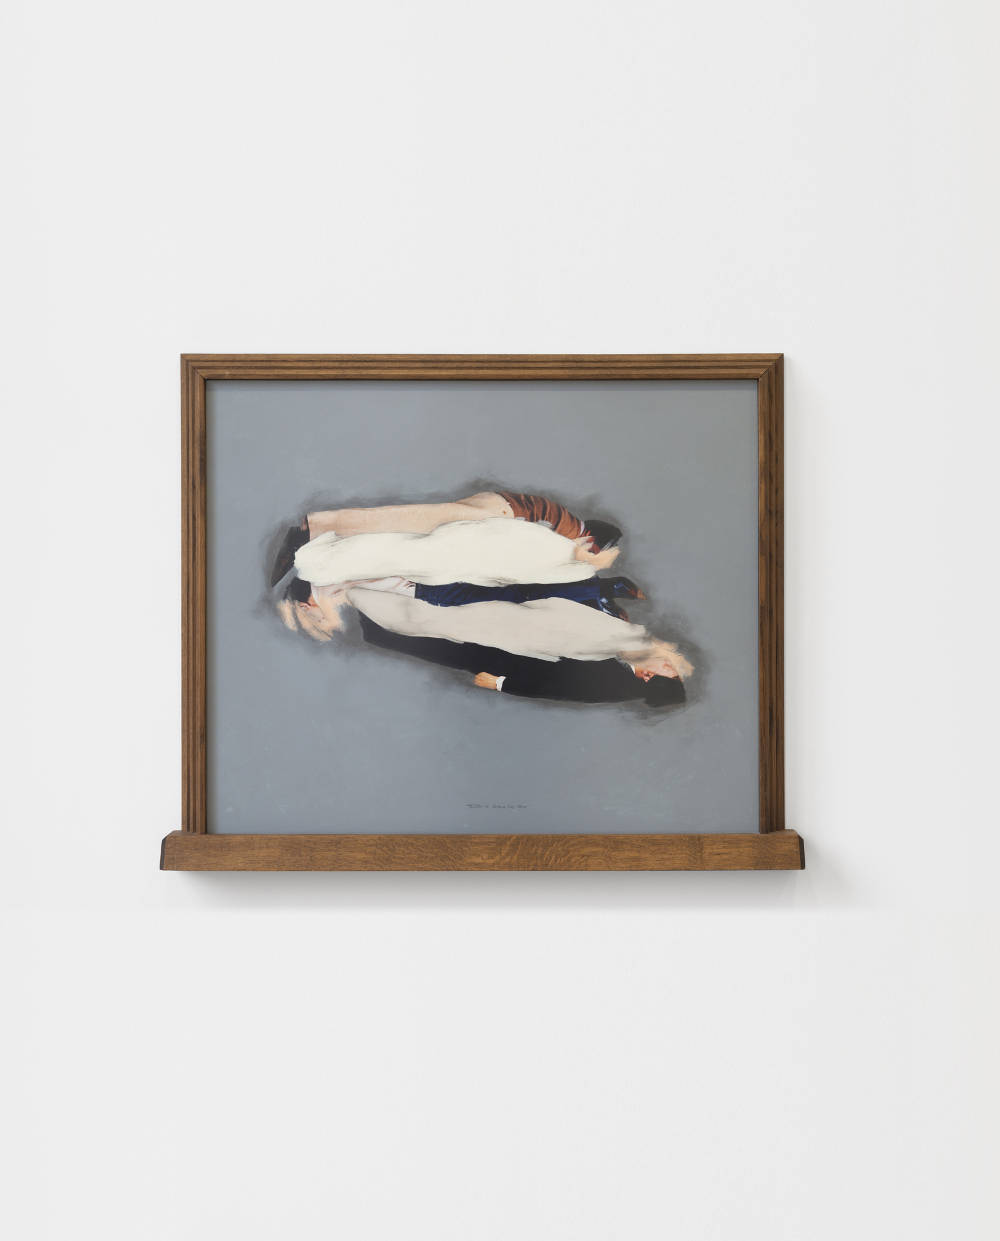 Ger van Elk, Sandwich Study 'Tombe' (C de X), 1994. Color photograph and acrylic paint, wooden frame 94.9 x 113 x 6.7 cm 37 3/8 x 44 1/2 x 2 5/8 in